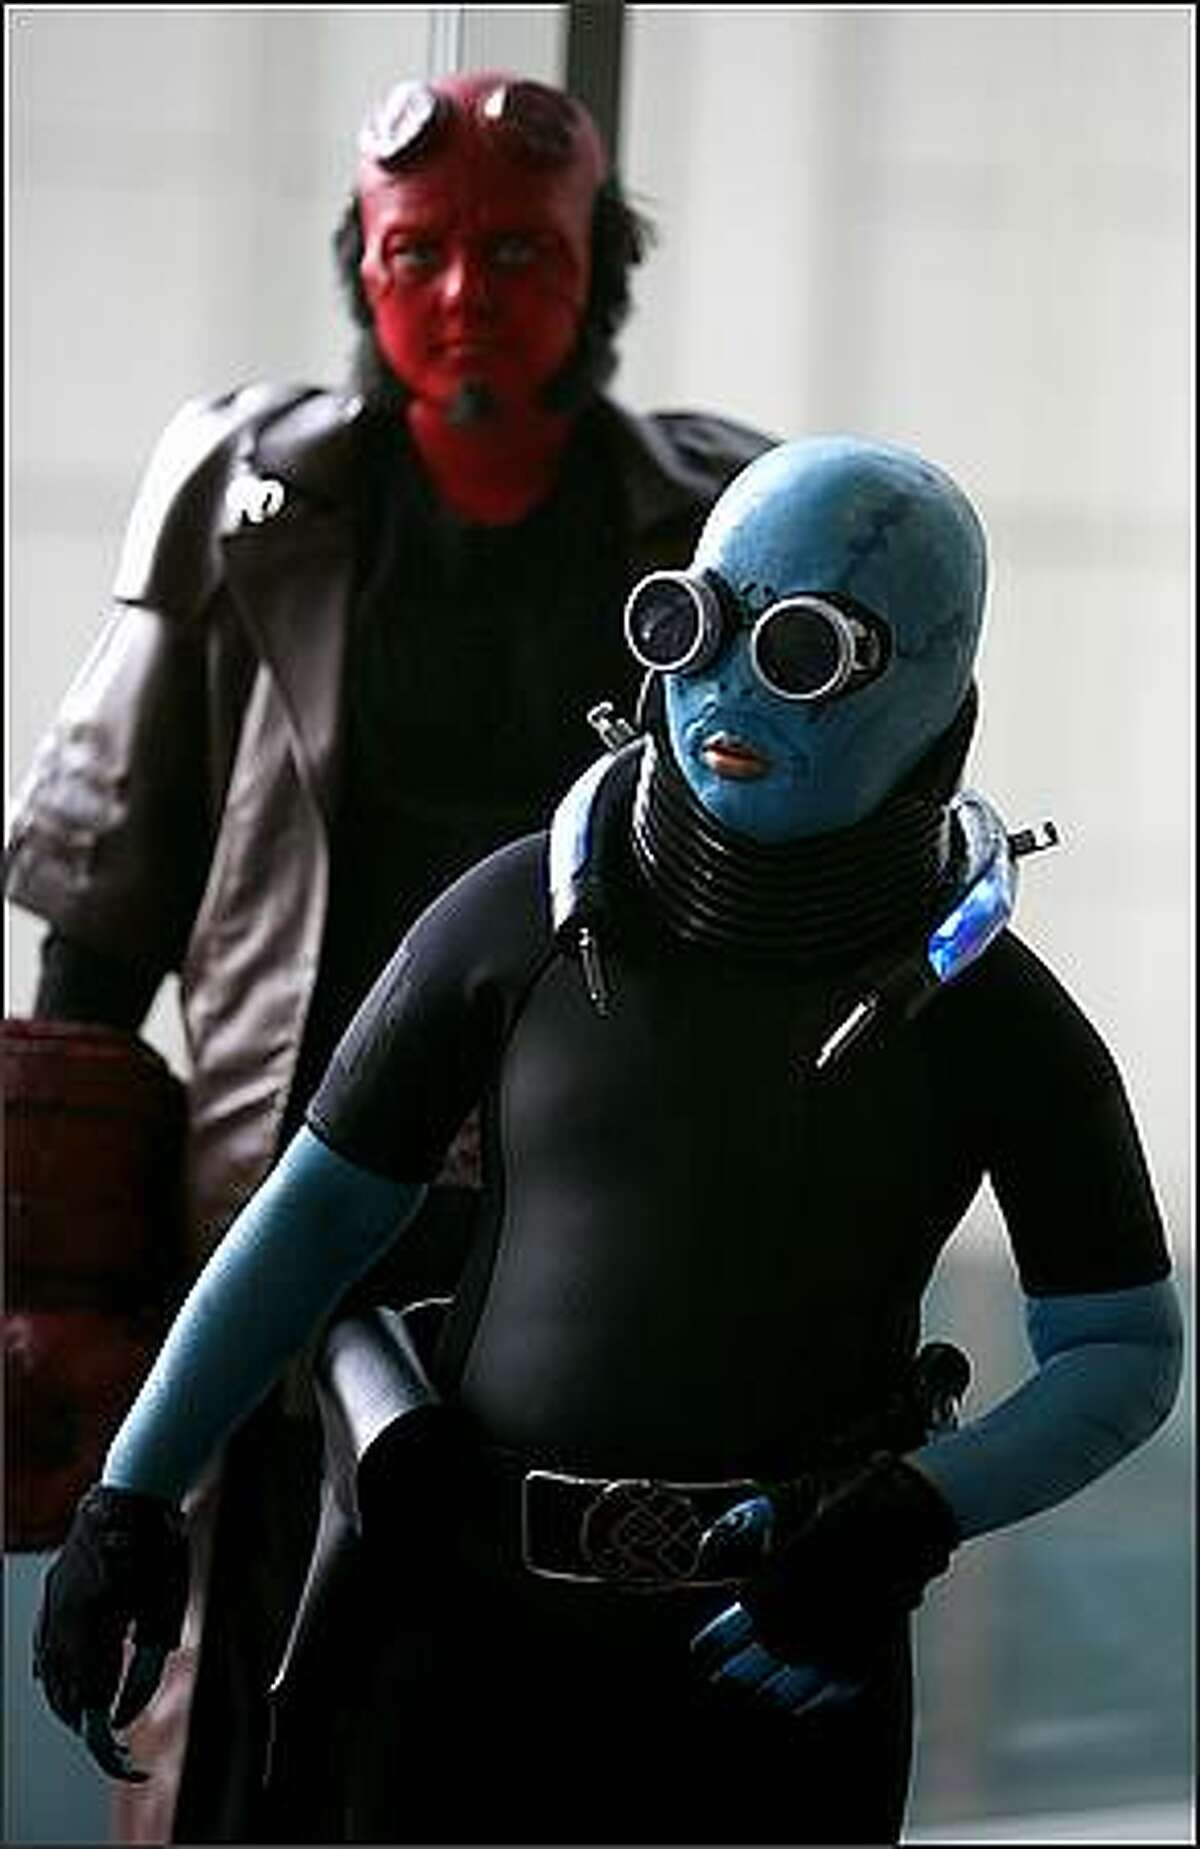 Cameron Hudson, 9, dressed as Abe Sapien, and his brother Carson, 11, dressed as Hellboy, walk the halls of the Emerald City ComiCon.